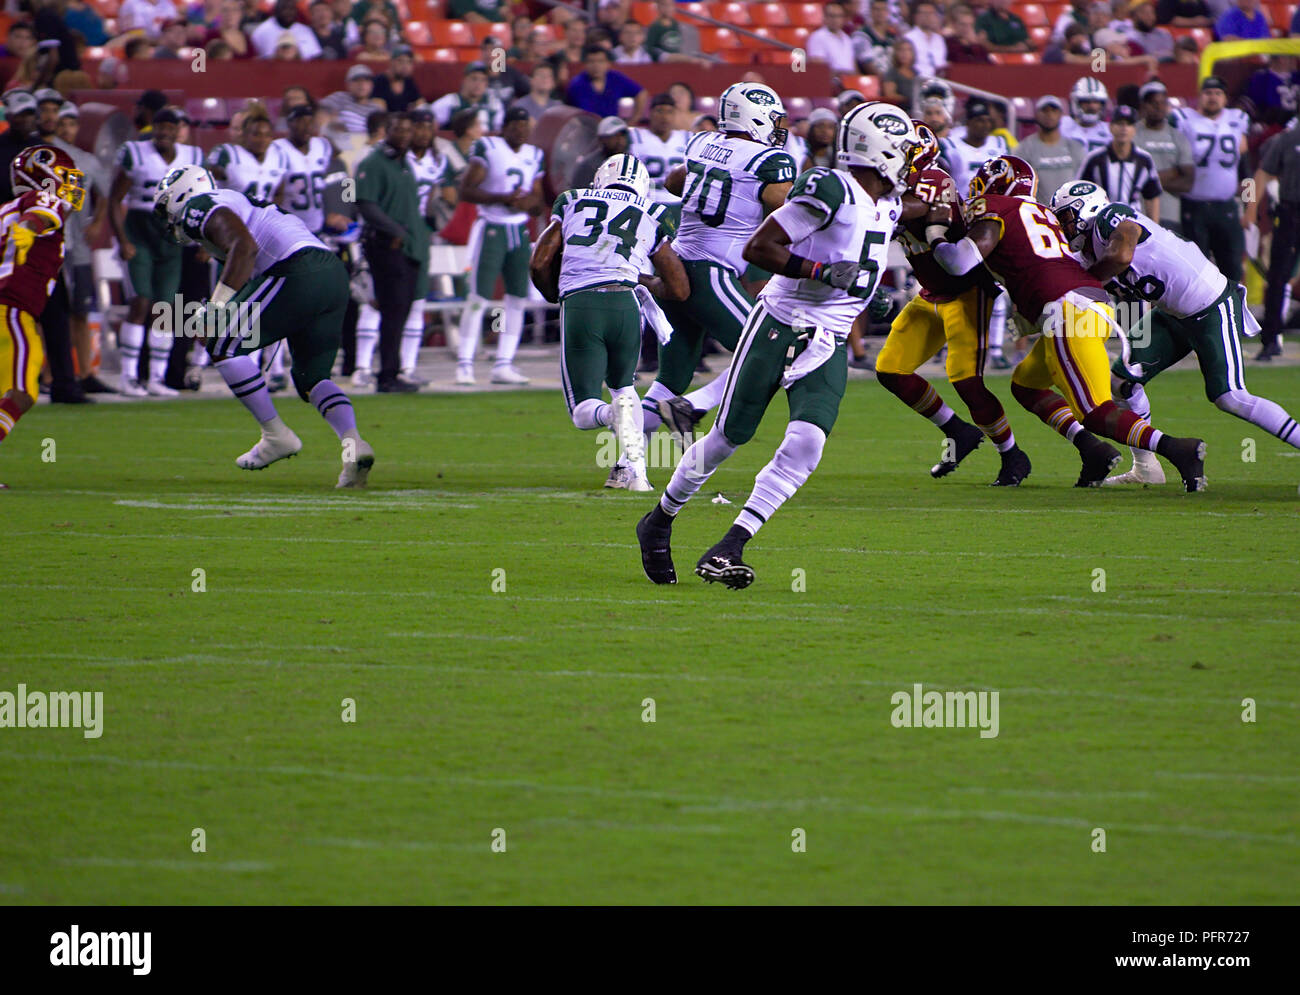 New York Jets Quarterback Teddy Bridgewater hands football off to George Atkinson against Redskins during preseason game - Stock Image